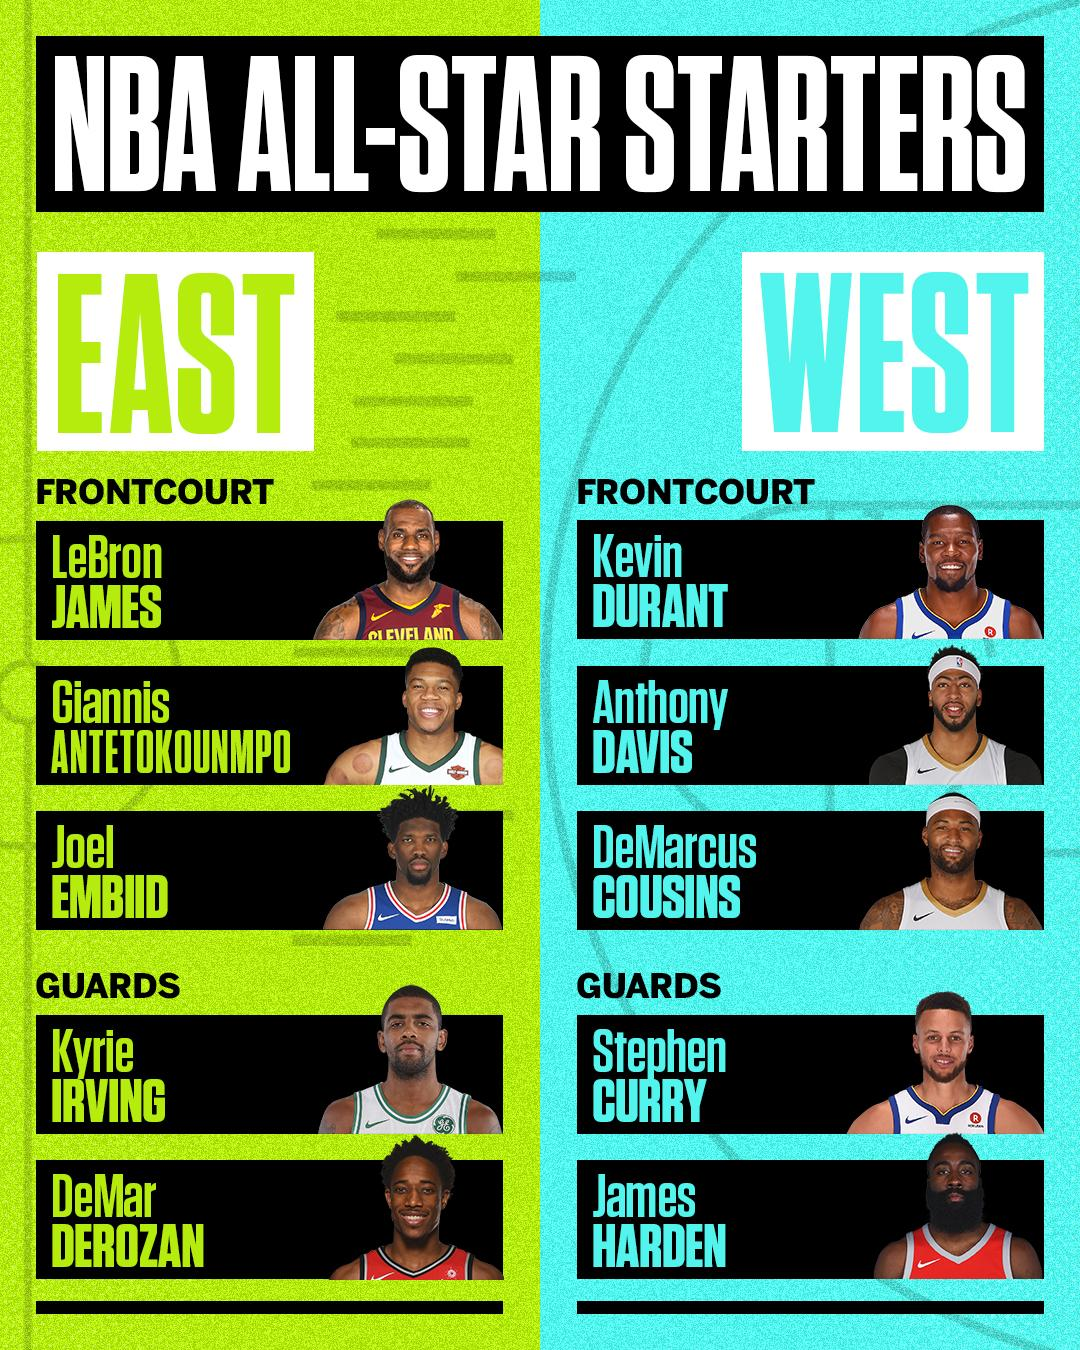 Your 2018 NBA All-Star starters: https://t.co/lur2u5eo3W